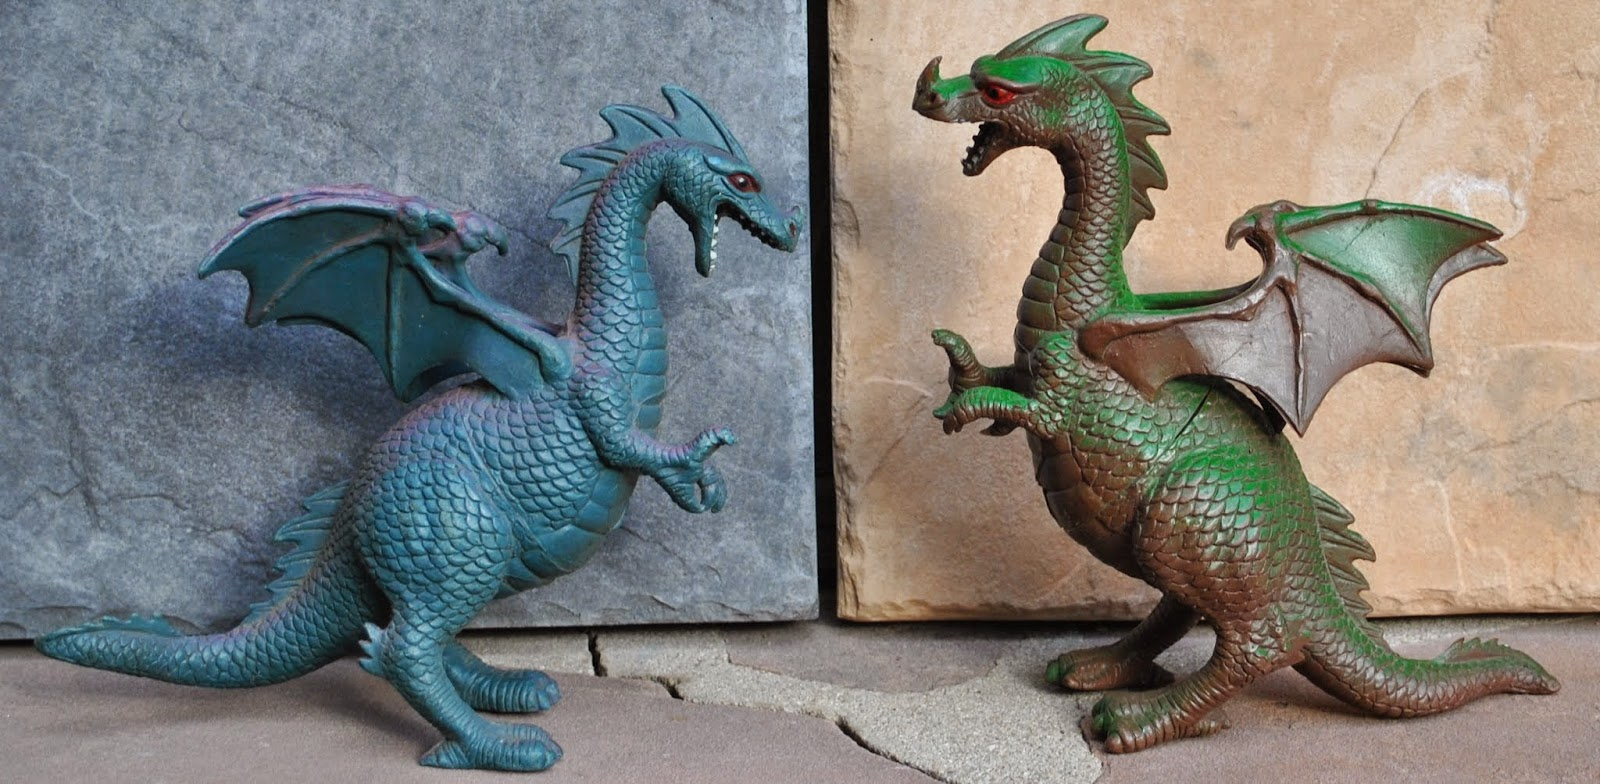 Fantasy Toy Soldiers My Favorite Dragons Of The 1980s